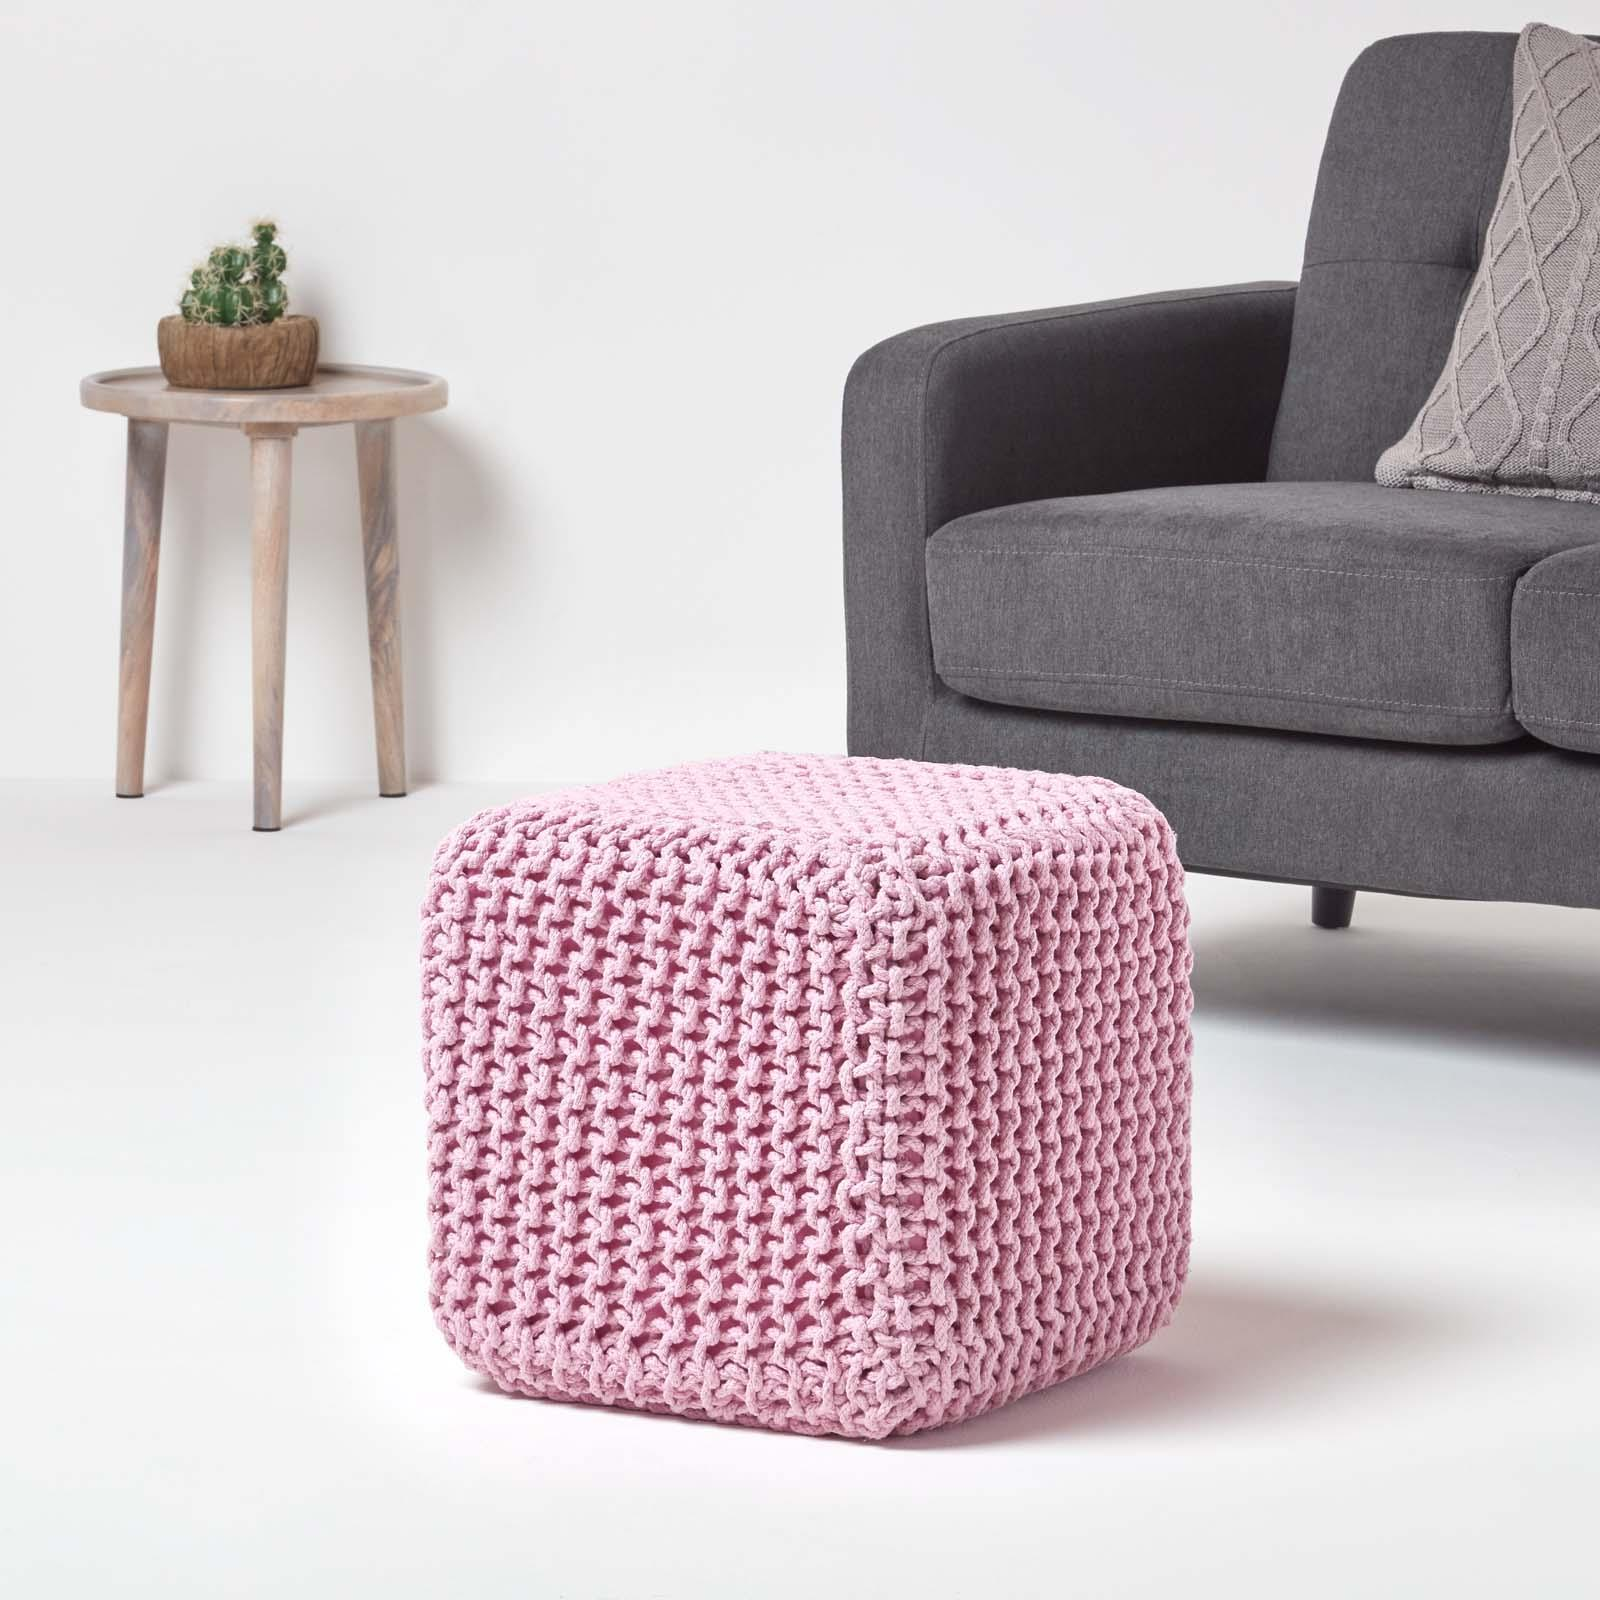 Hand-Knitted-100-Cotton-Pouffes-Round-Sphere-Or-Cube-Square-Chunky-Footstools thumbnail 146